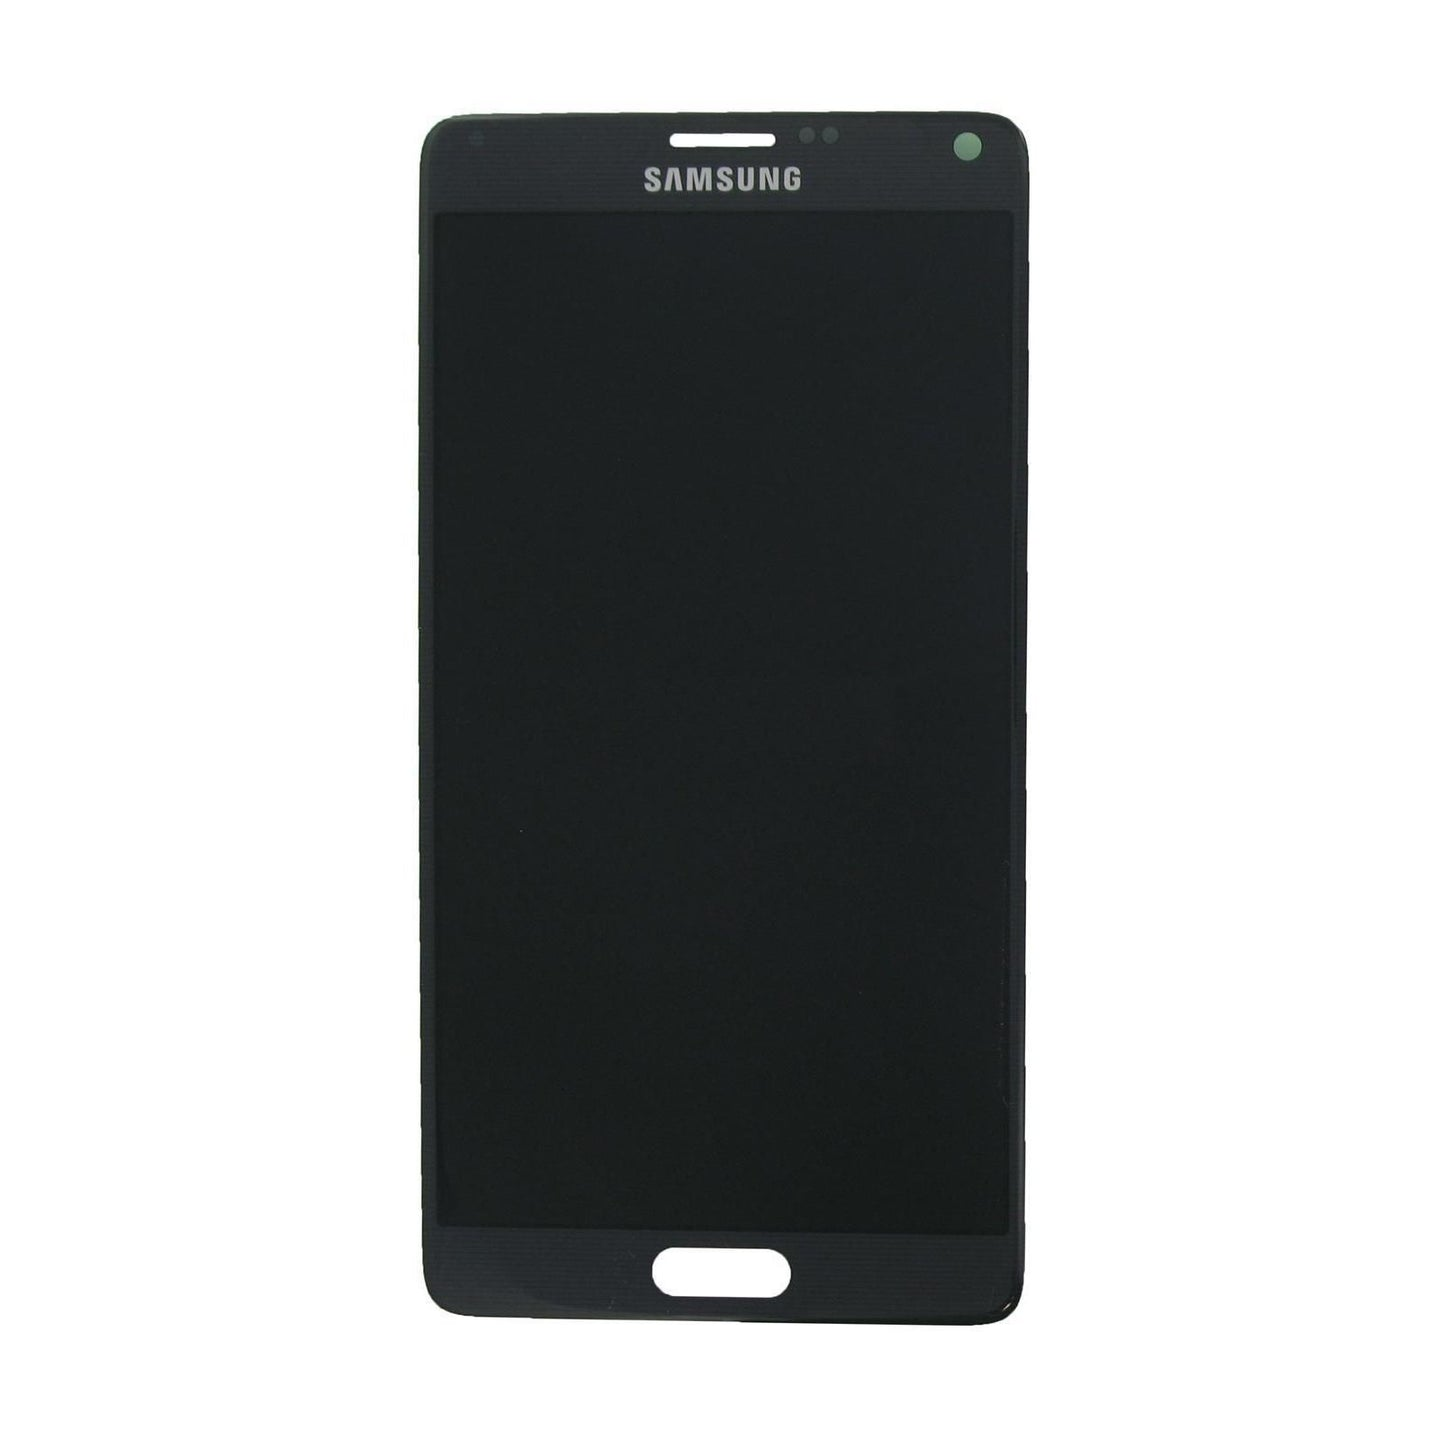 Samsung Galaxy Note 4 LCD With Digitizer Touch Screen Black